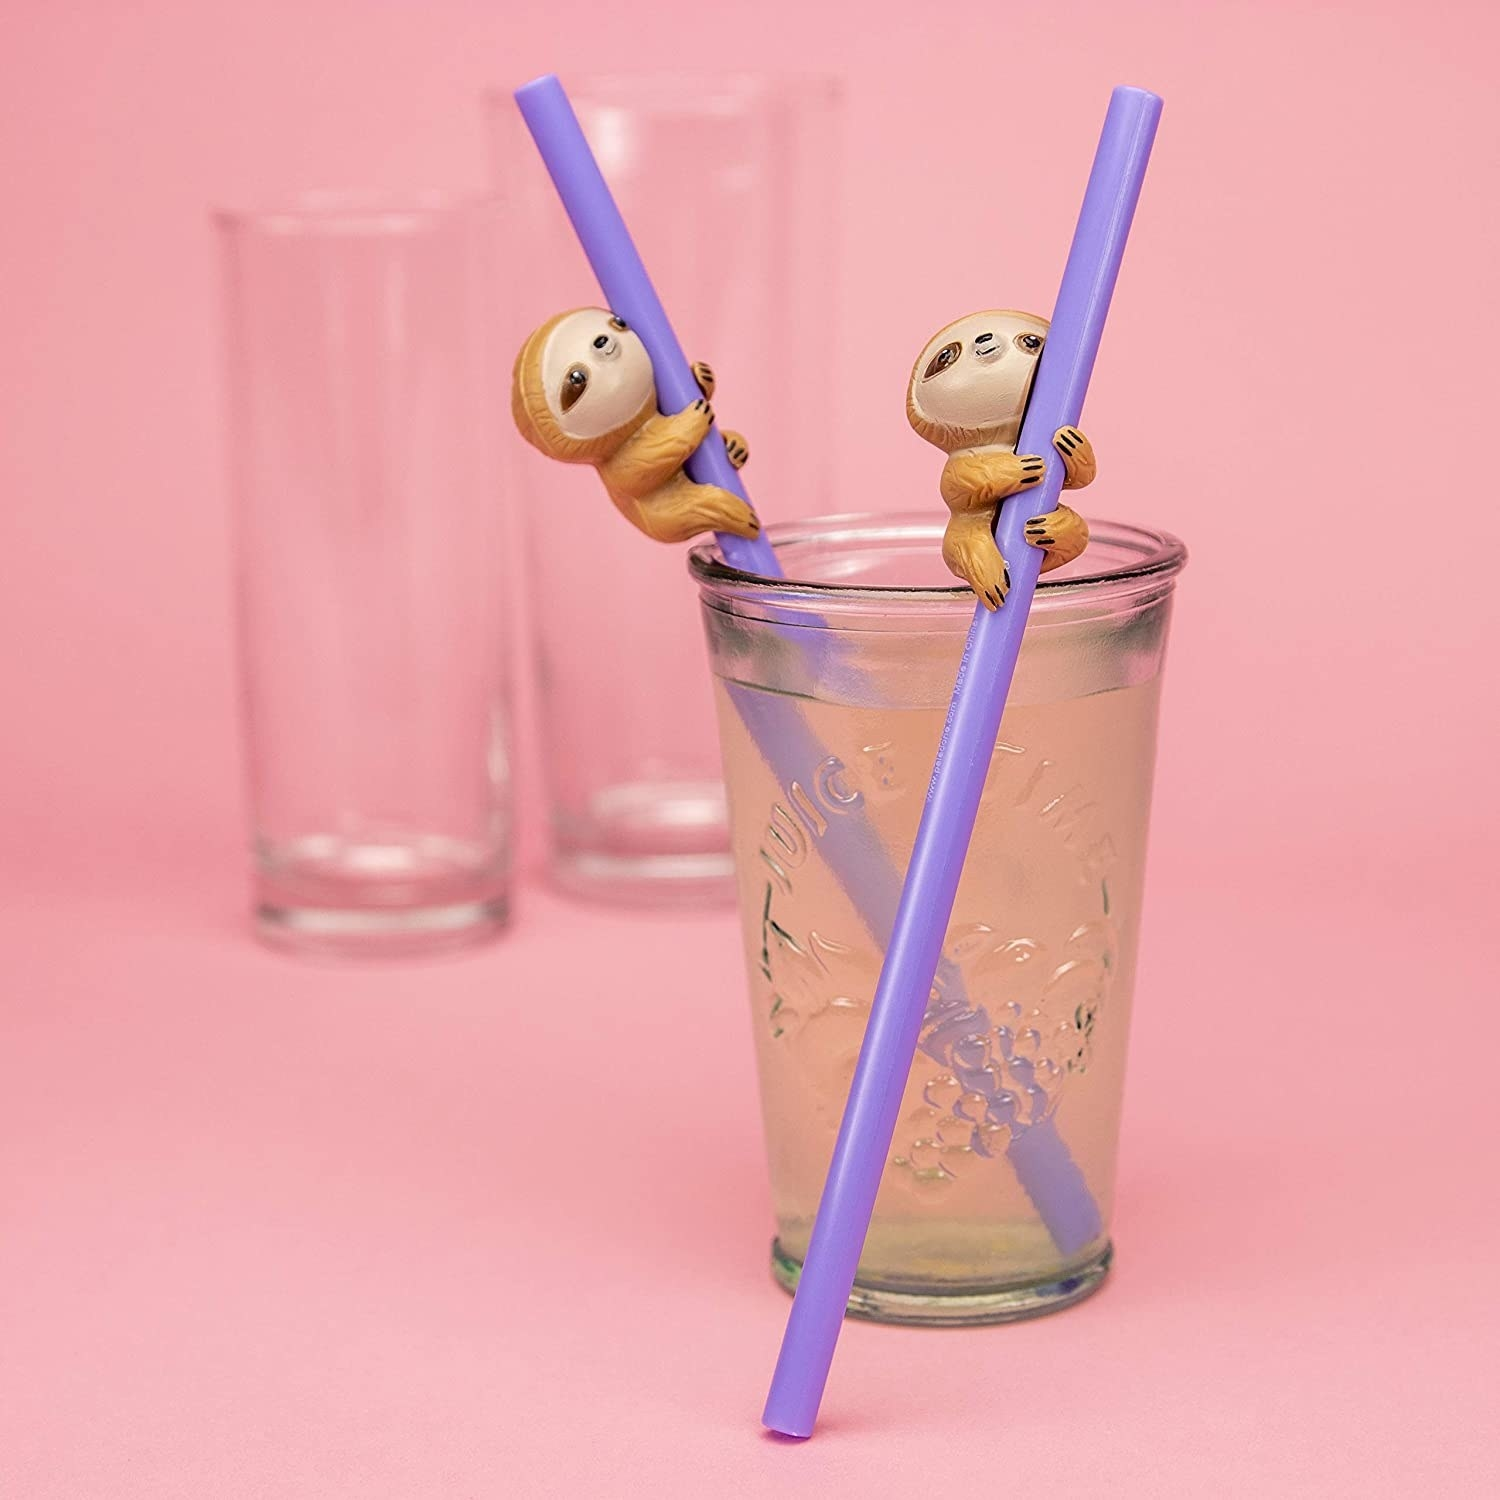 The purple straws with sloth figurines gripping the sides. One is in a glass of water and the sloth is just above the rim of the glass